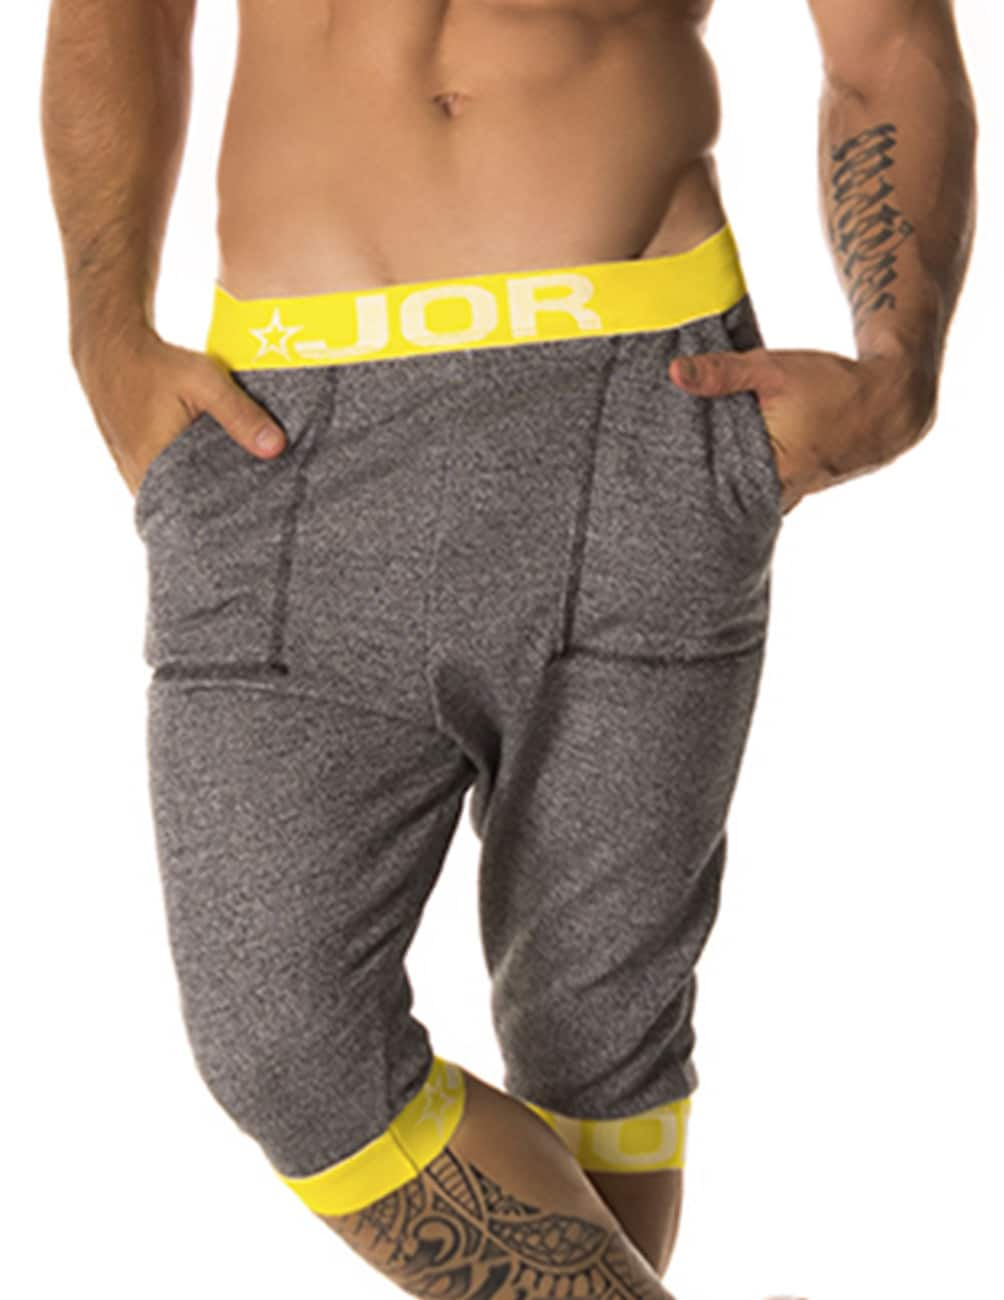 Male underwear model wearing JOR 0162 Energy Loungewear available at www.MensUnderwear.io